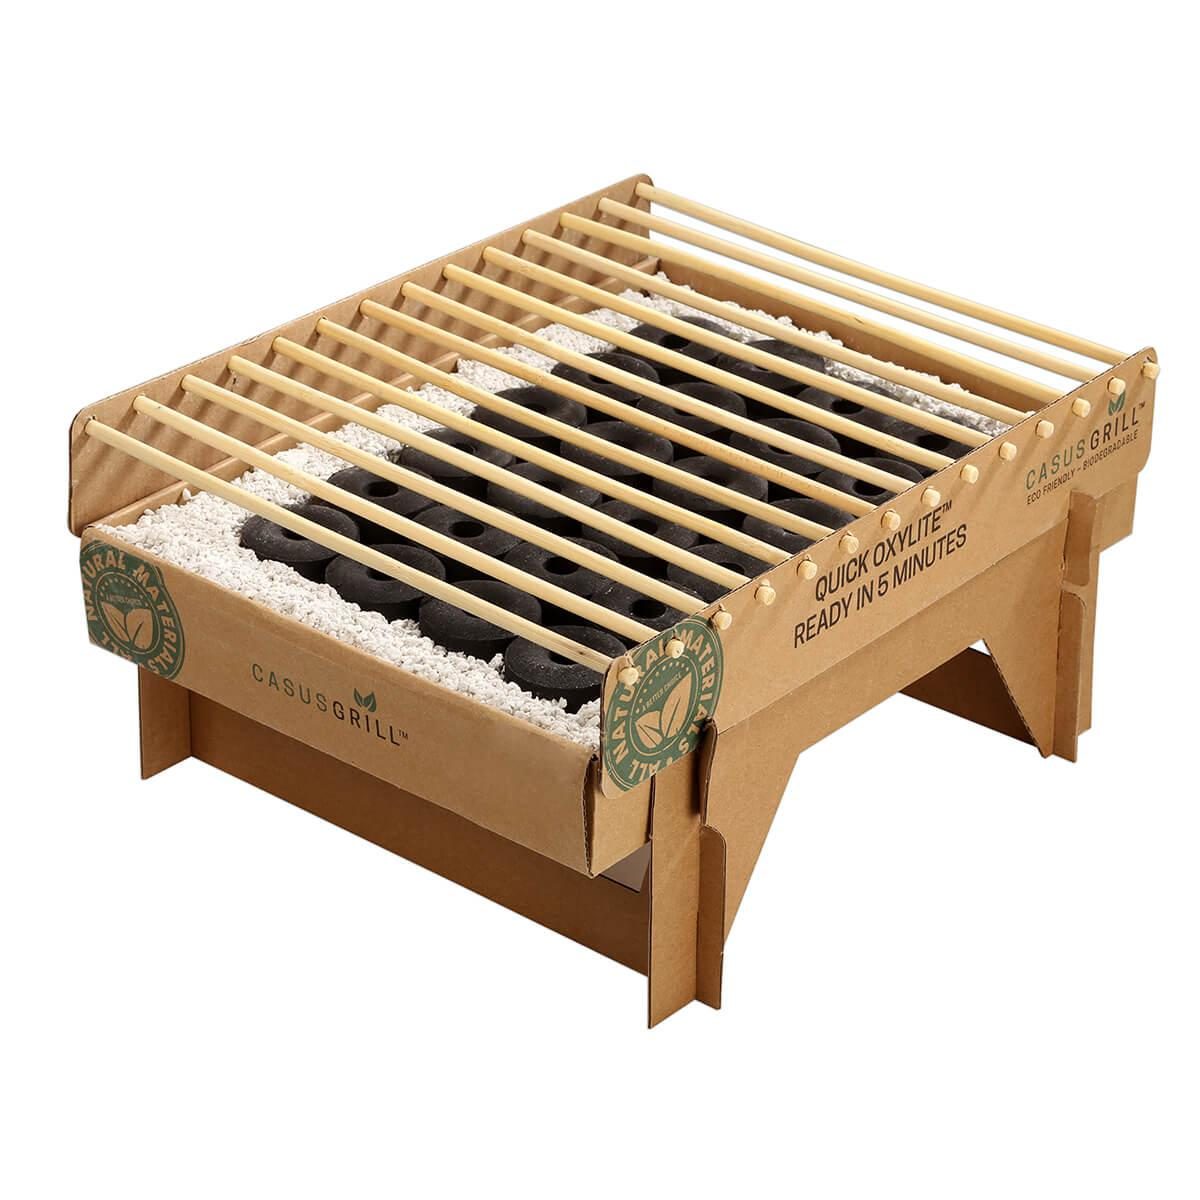 Biodegradable Grill